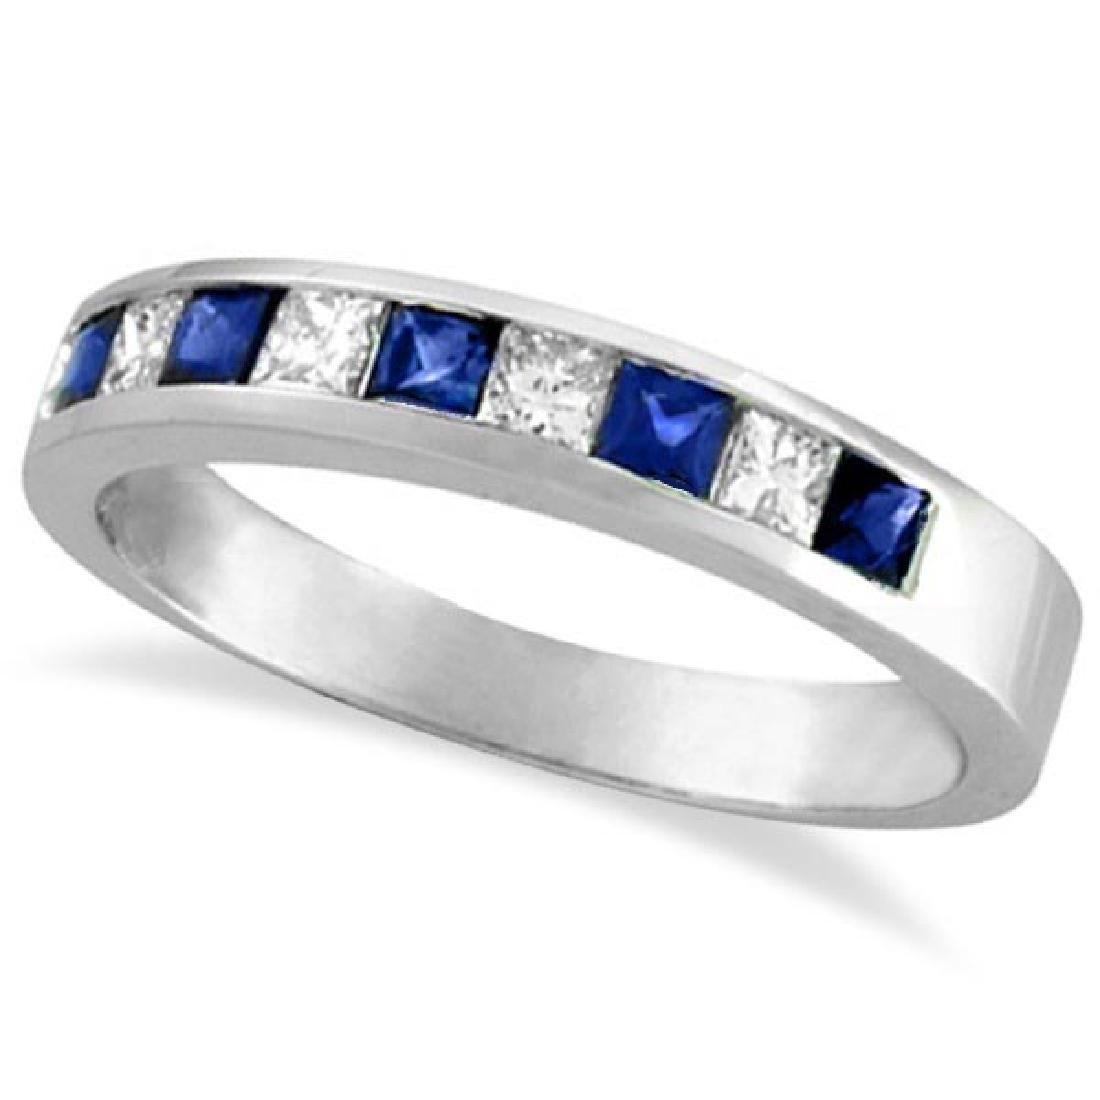 Princess-Cut Diamond and Sapphire Wedding Ring Band in